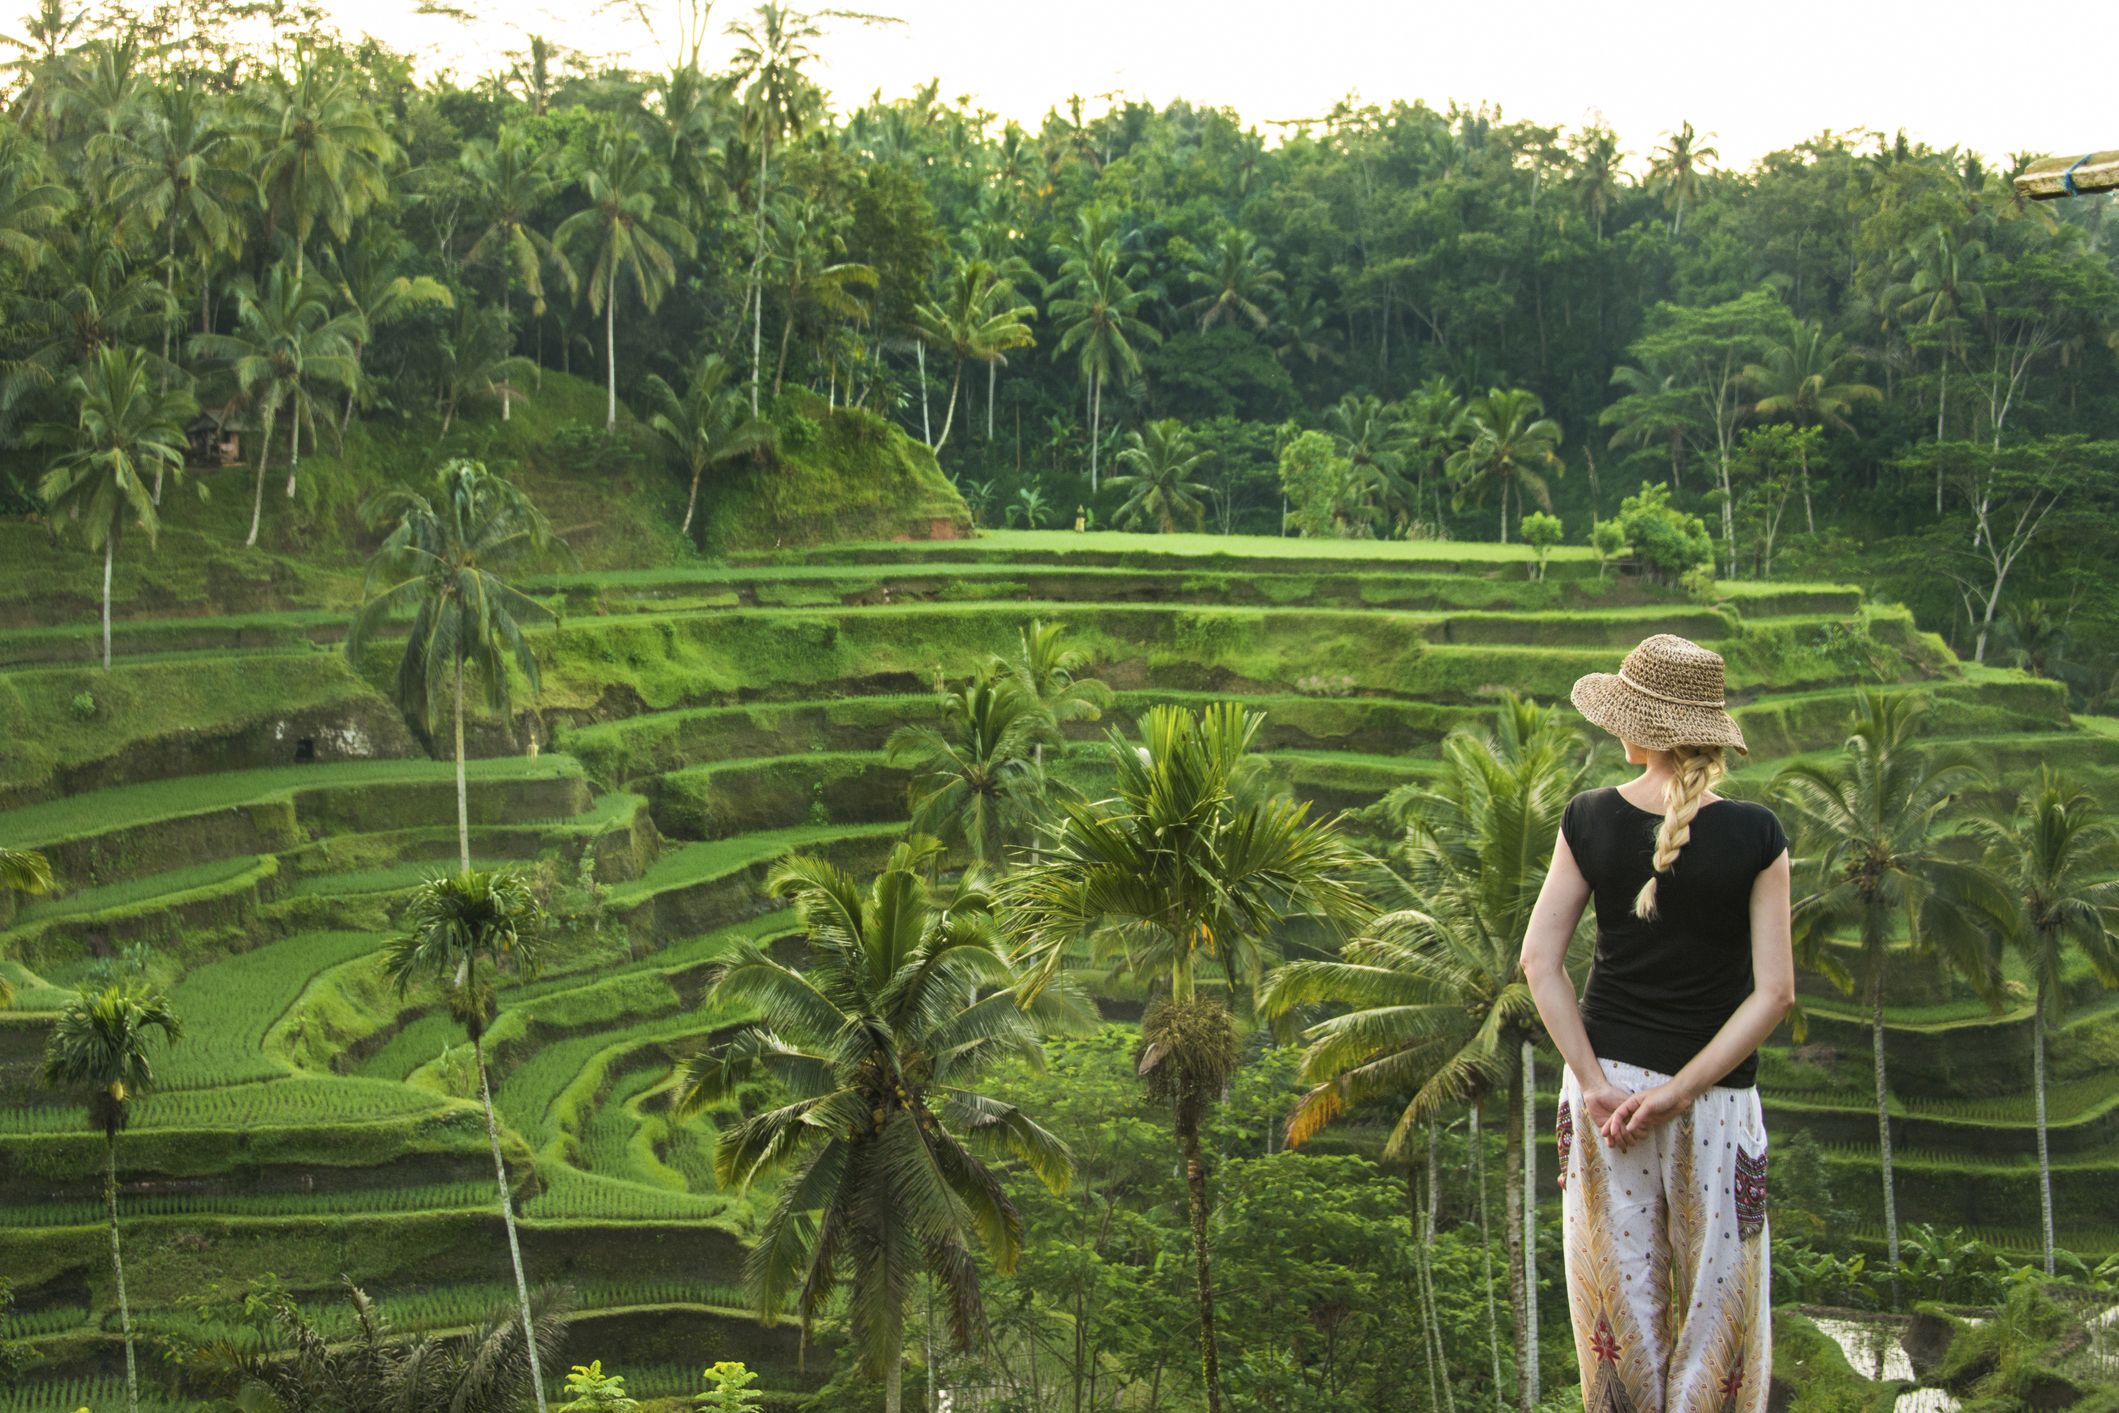 Sawah di Bali. Foto: Getty Images / Smith Photographers